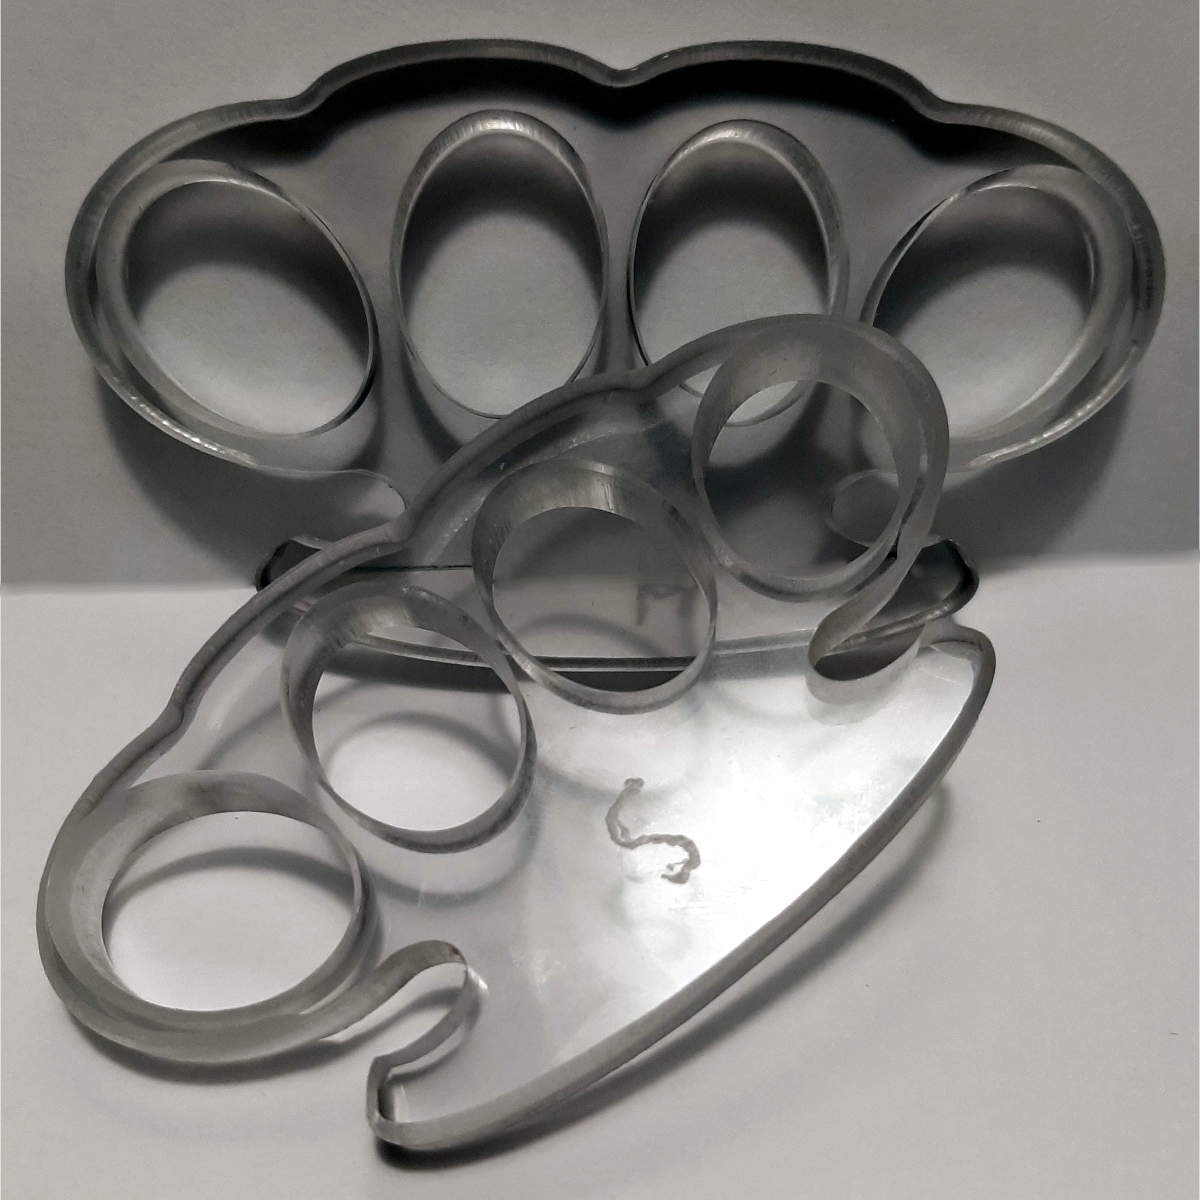 brass knuckled replica plastic knuckle dusters